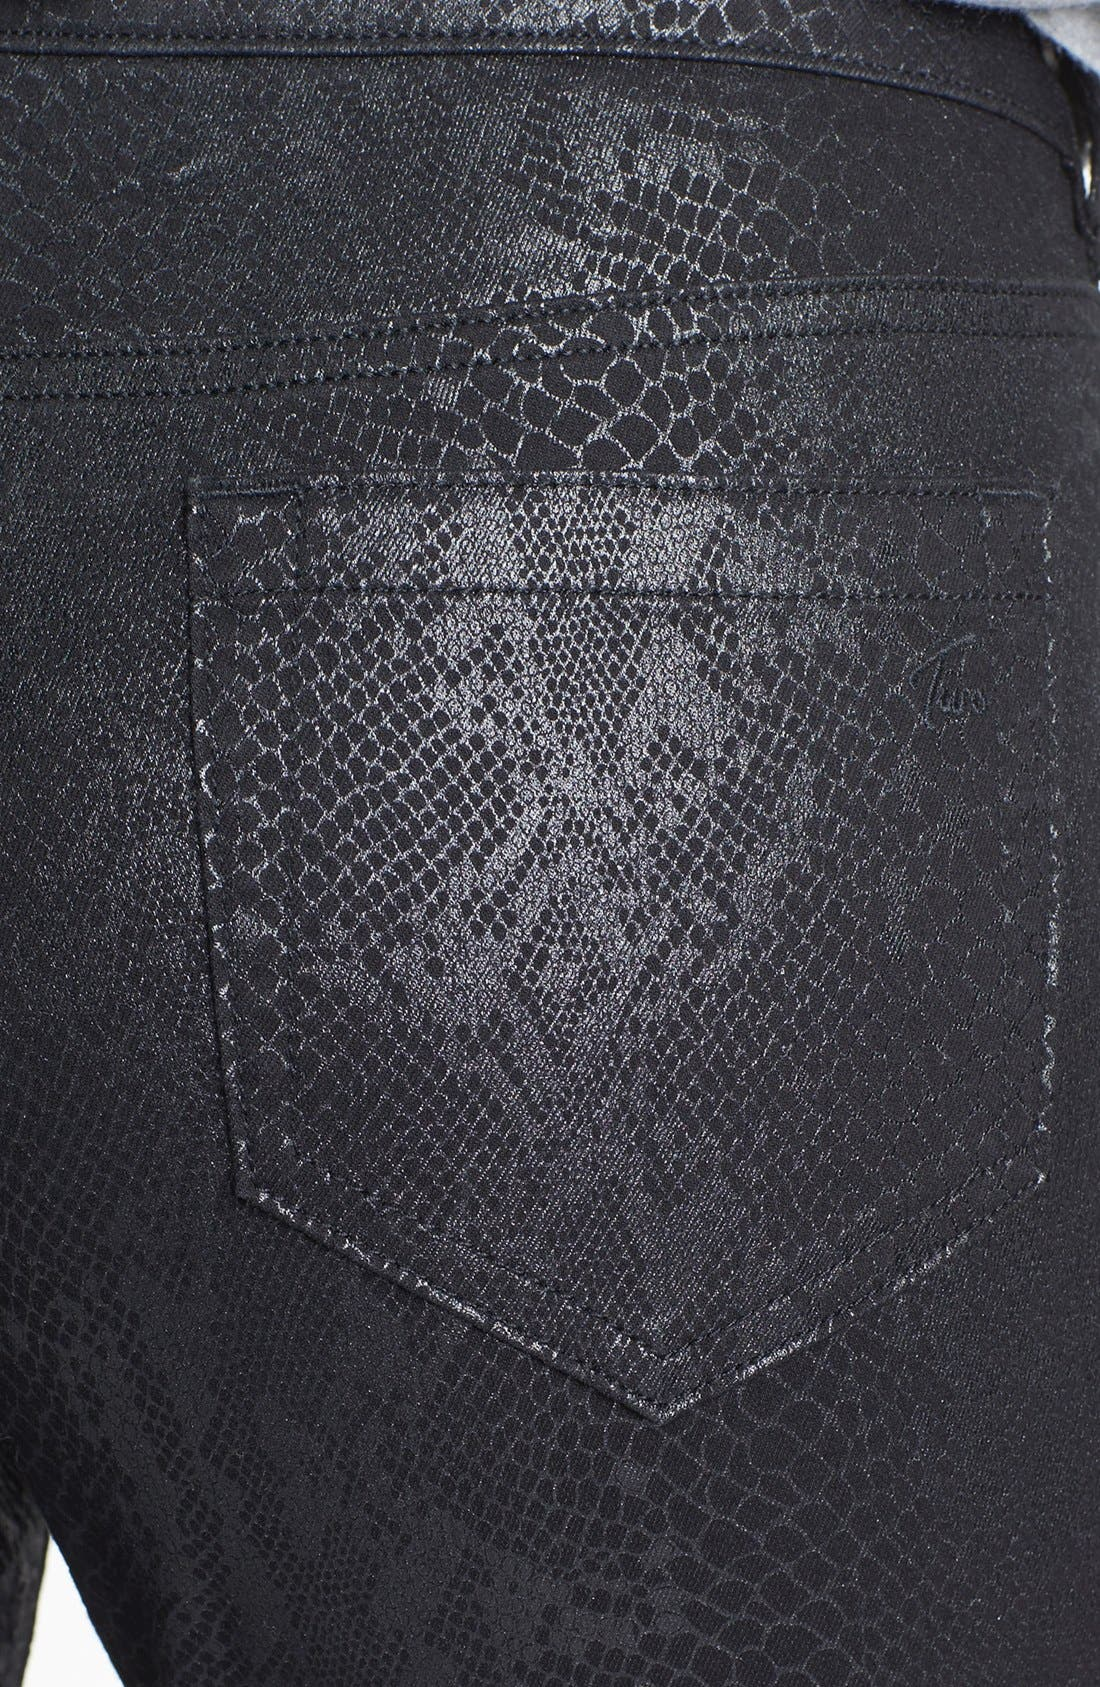 Alternate Image 3  - Two by Vince Camuto Foiled Snakeskin Print Skinny Jeans